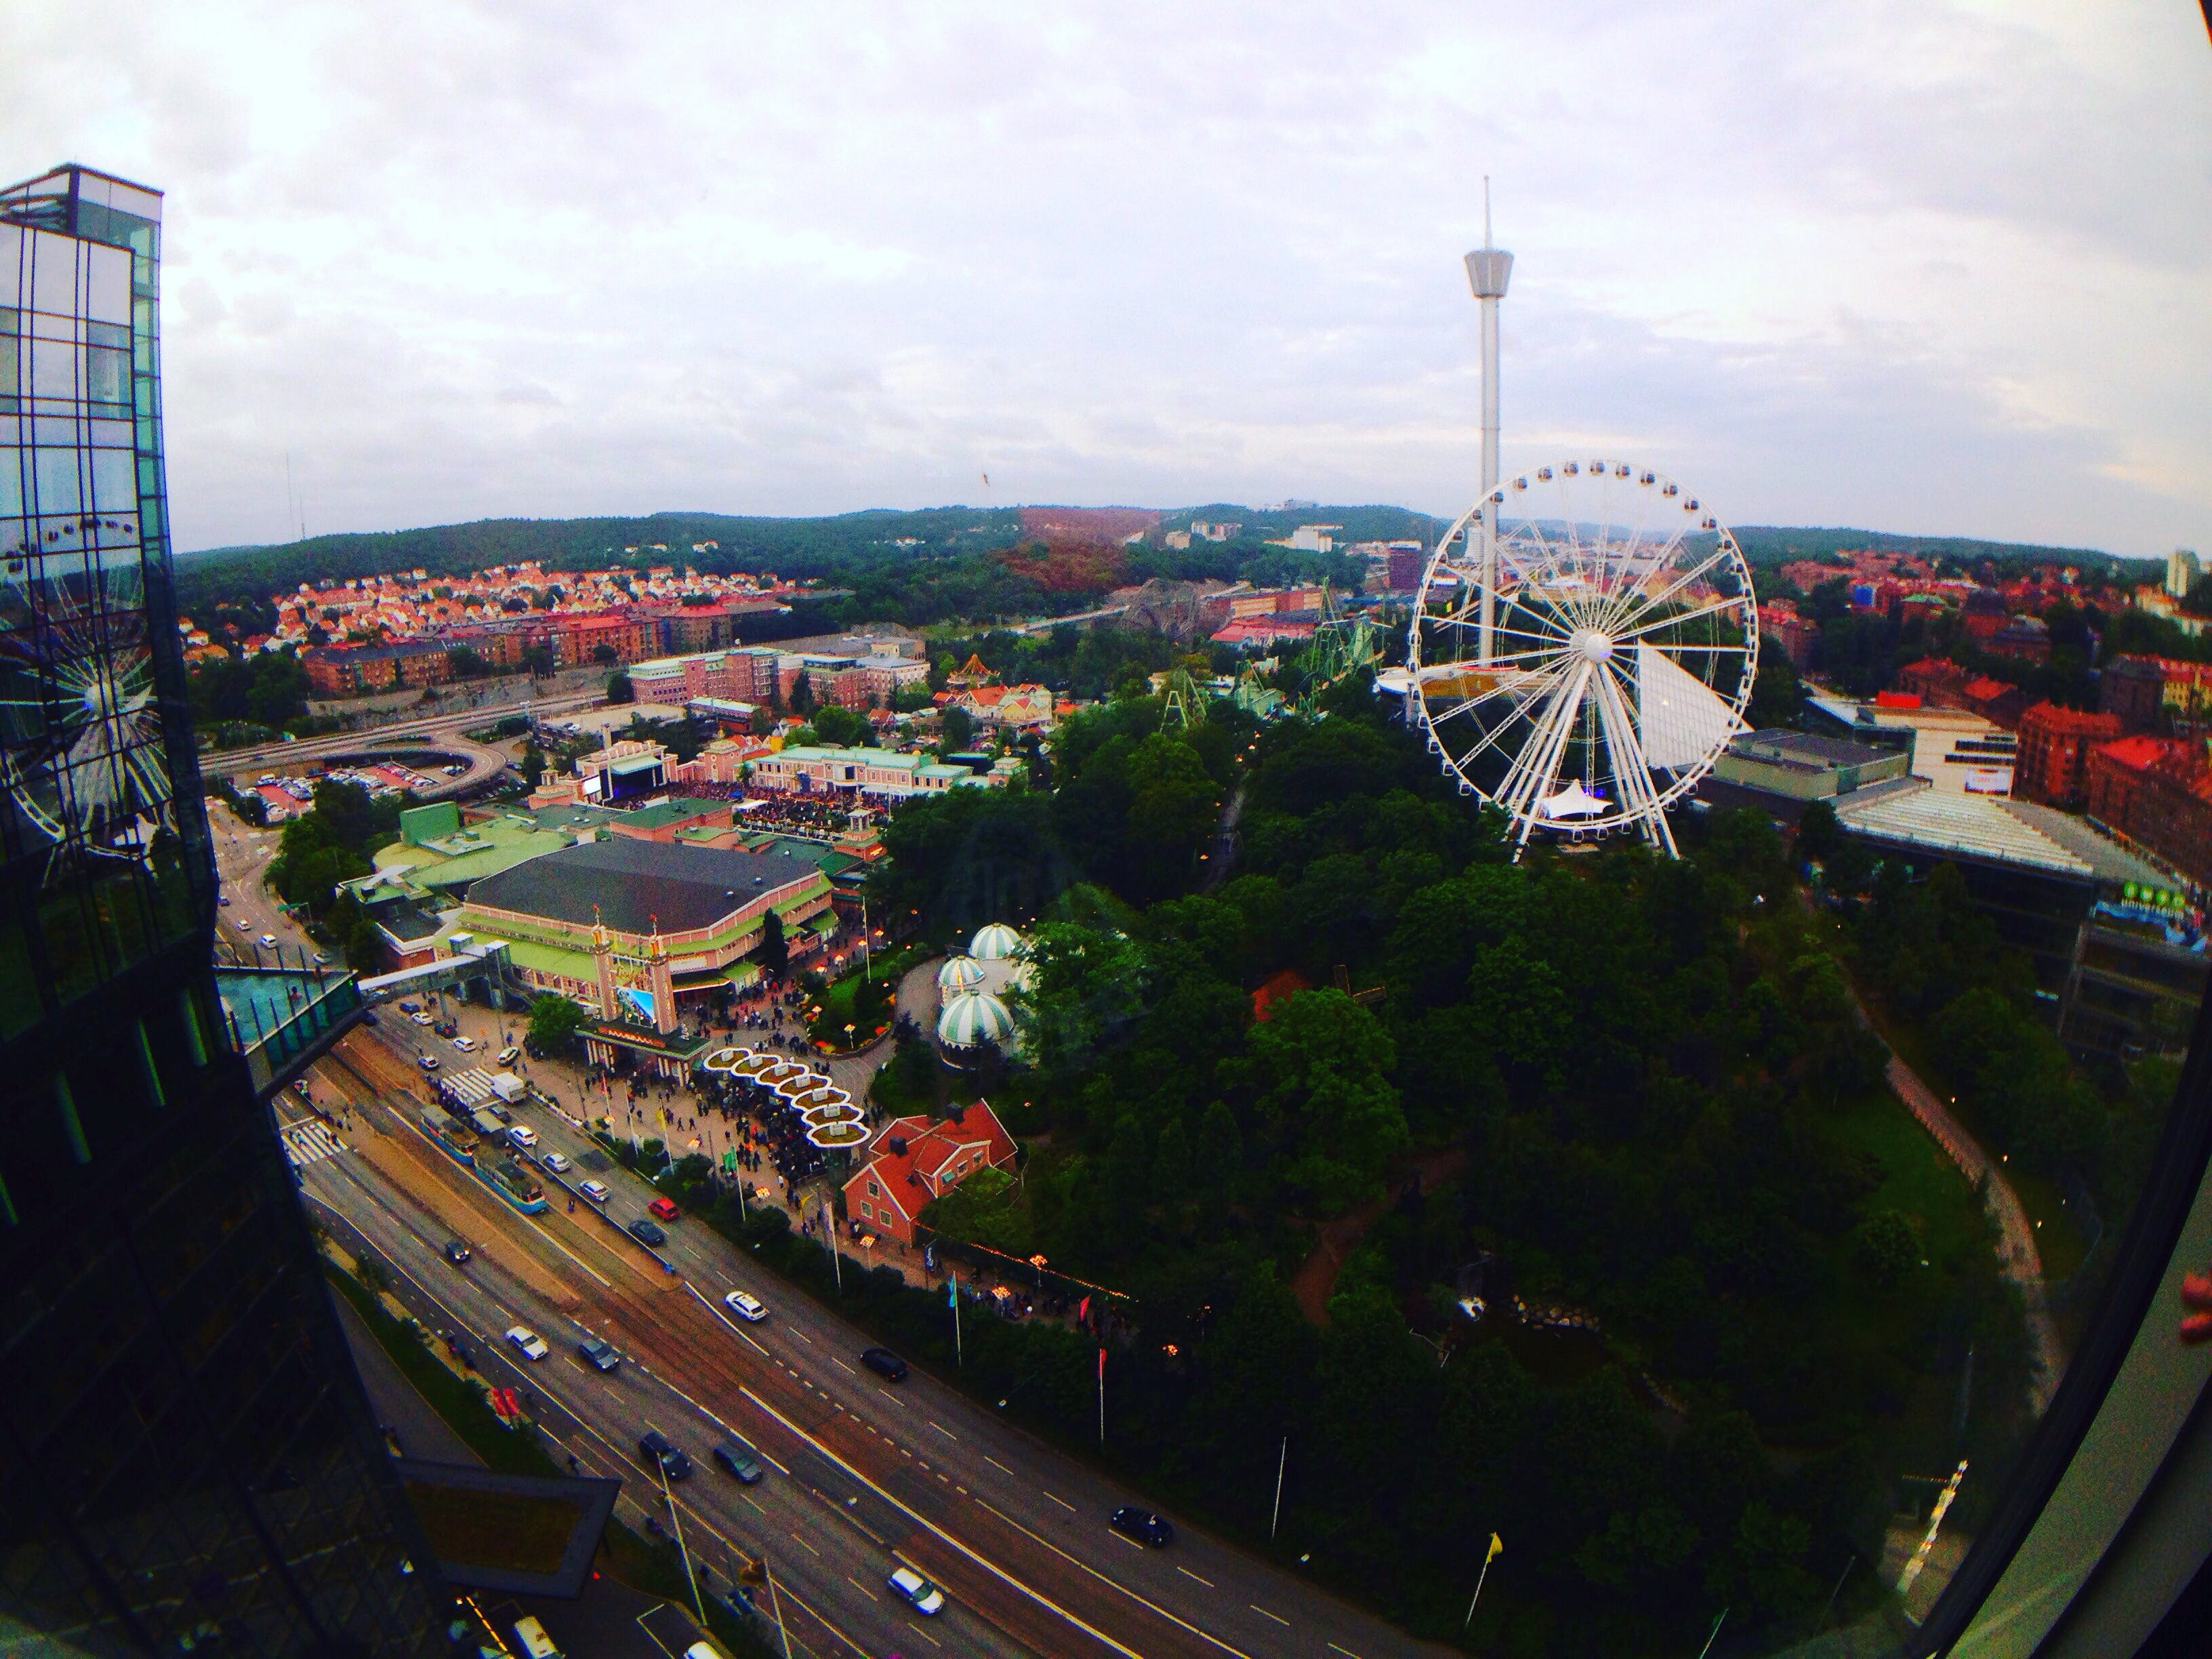 Free stock photo of amusement park, buildings, carnival, colorful